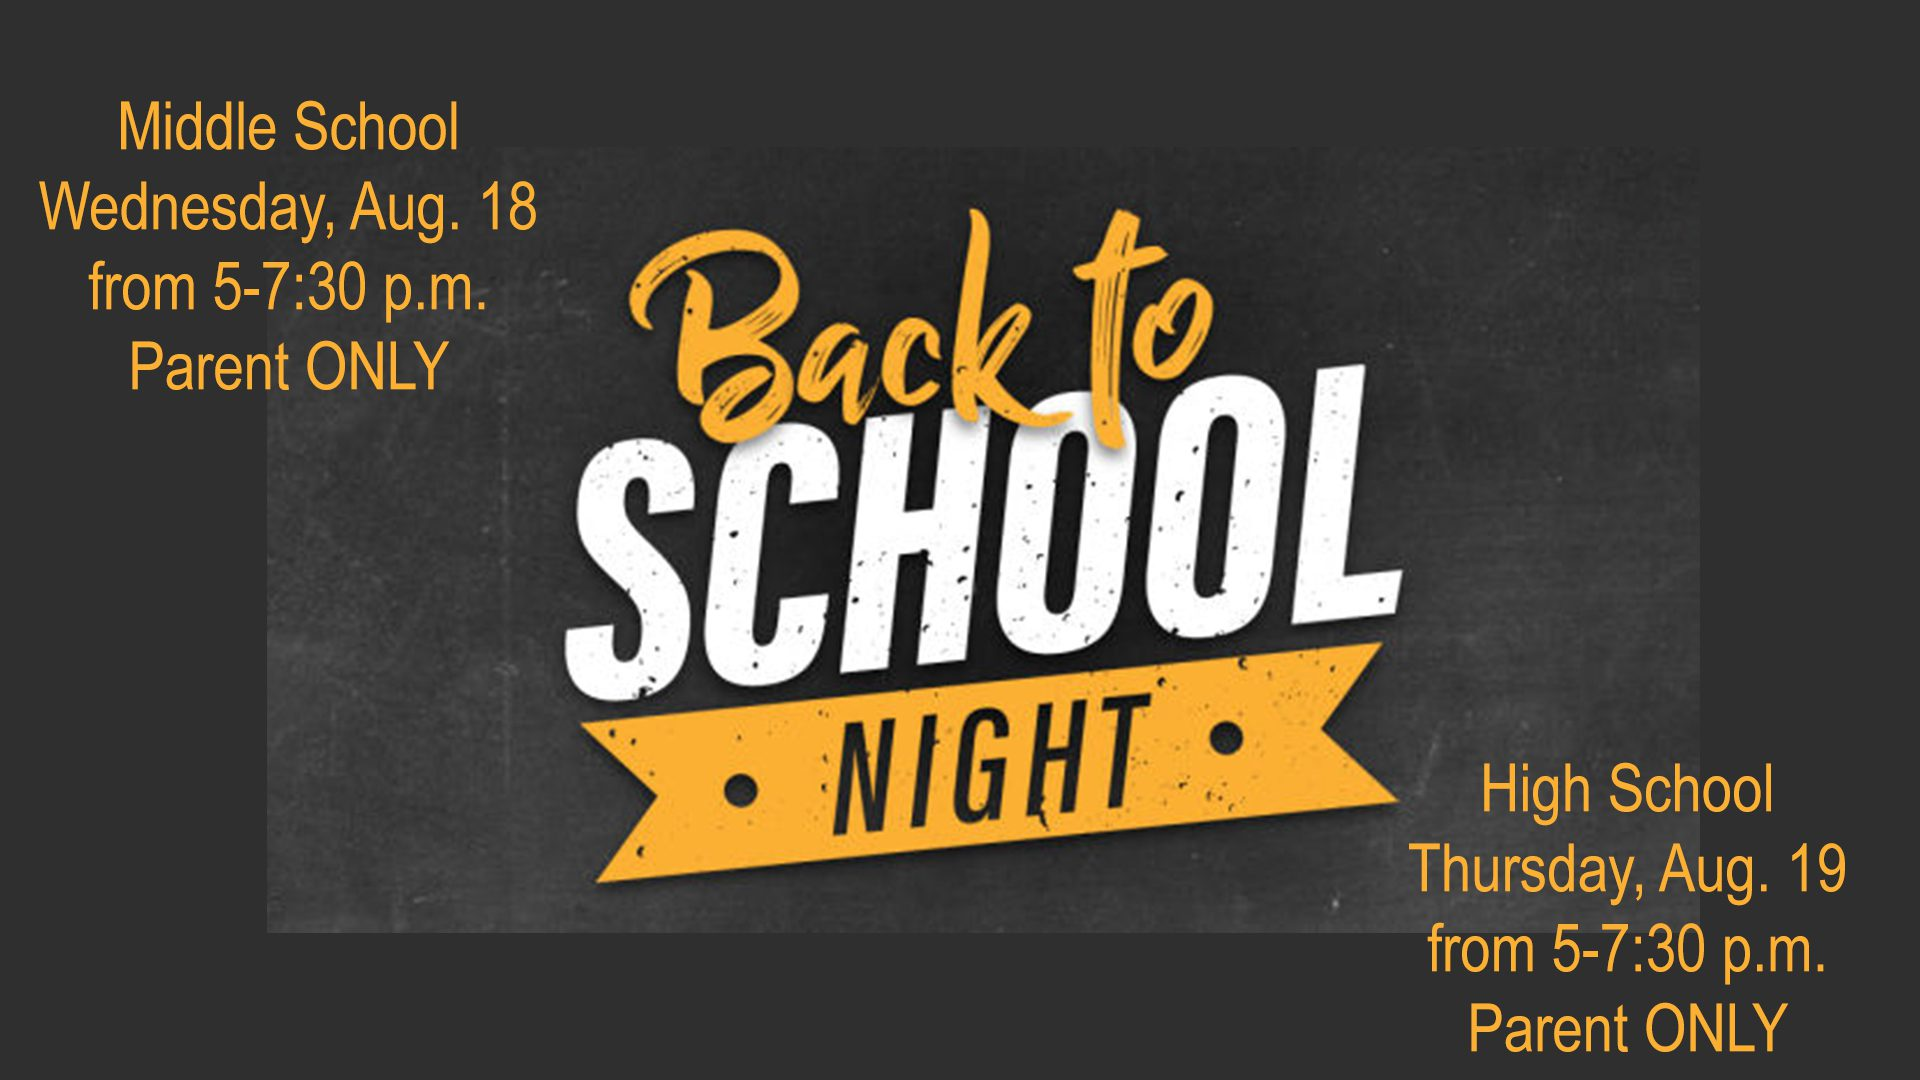 Middle and High School Back to School Nights